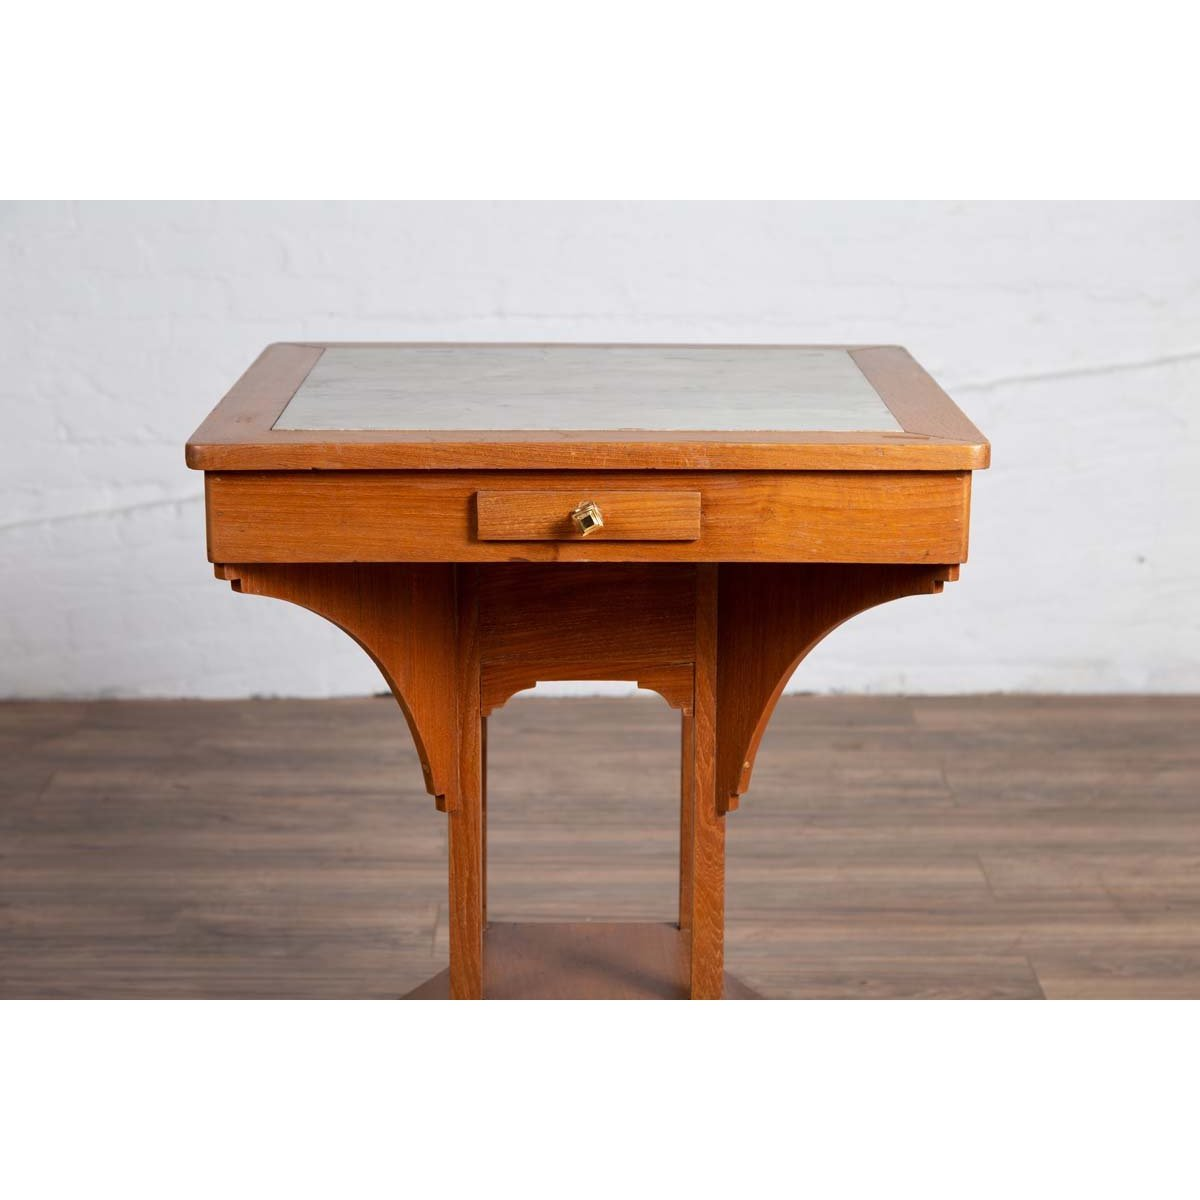 Vintage Dutch Colonial Indonesian Square Center Table with Marble Inset